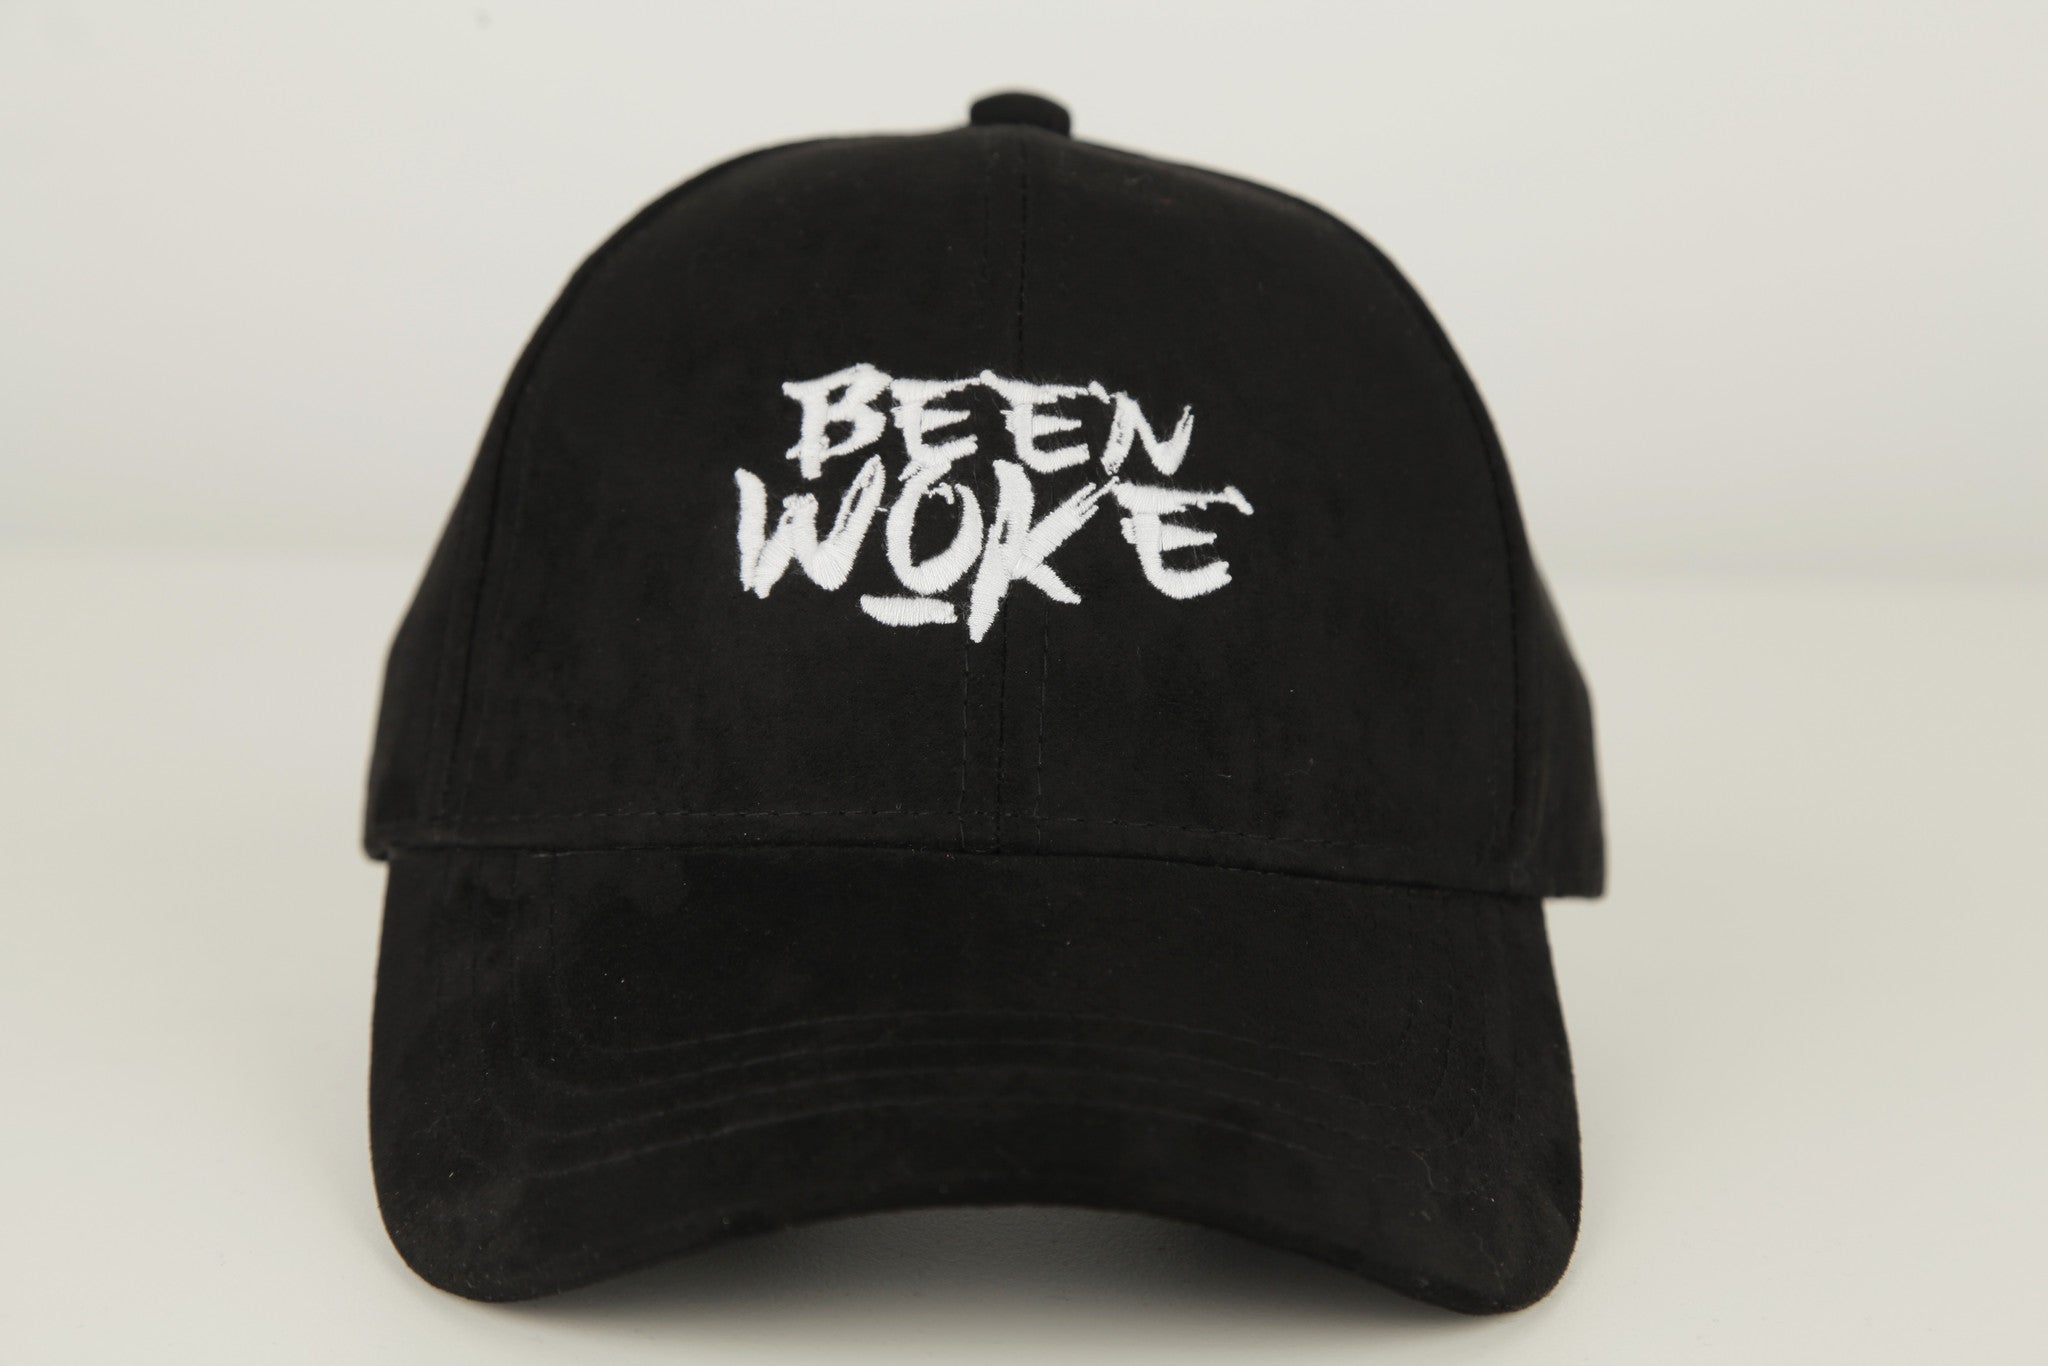 OFFICIAL WOKE APPAREL - Been Woke Black Suede Polo Hat